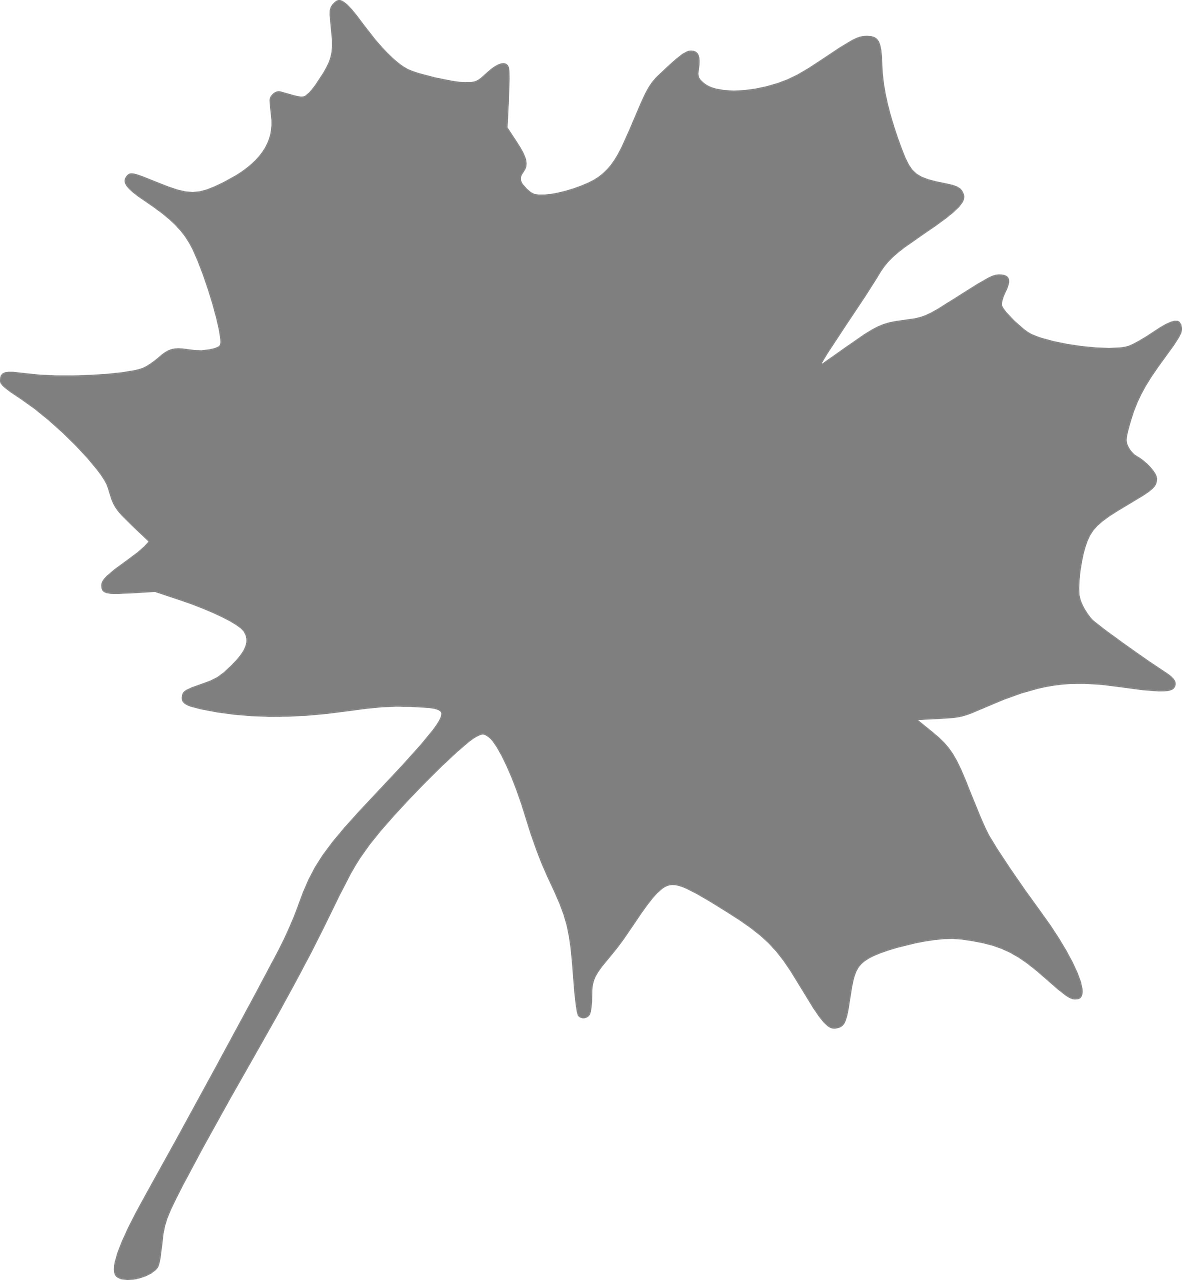 It is a graphic of Printable Leaf Stencils in maple leaf